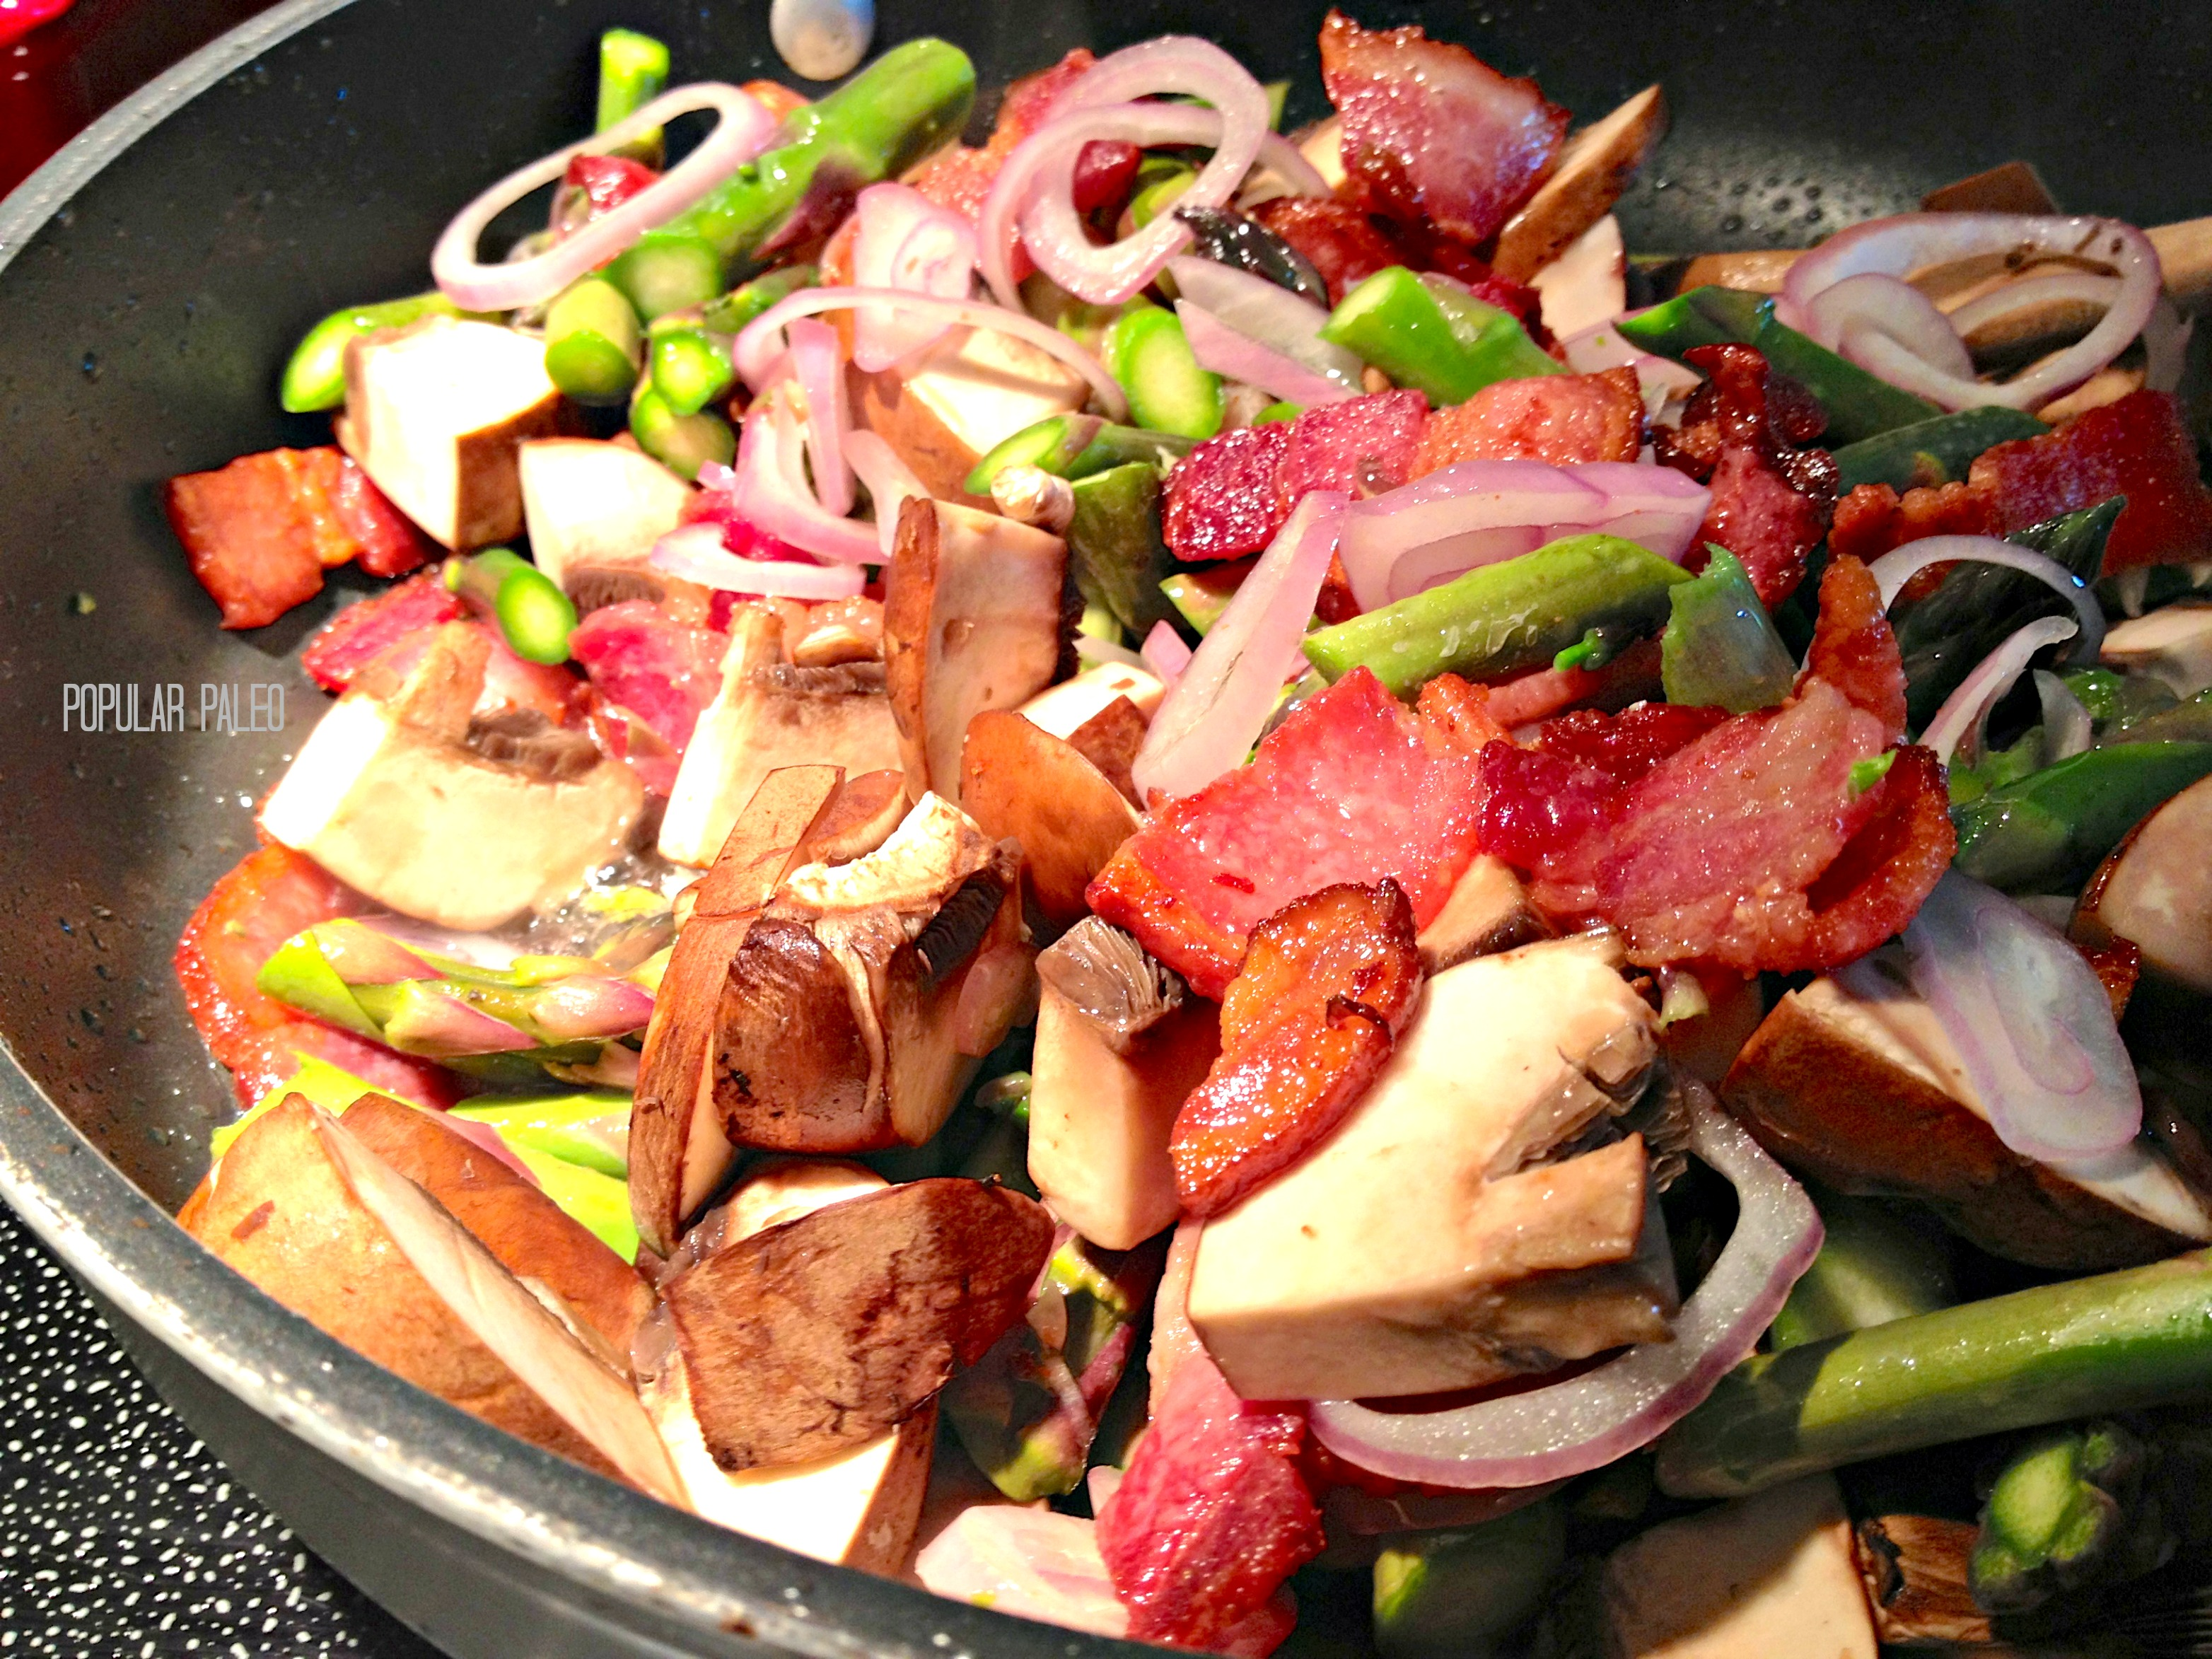 protein-topper-hash-cooking-popular-pale